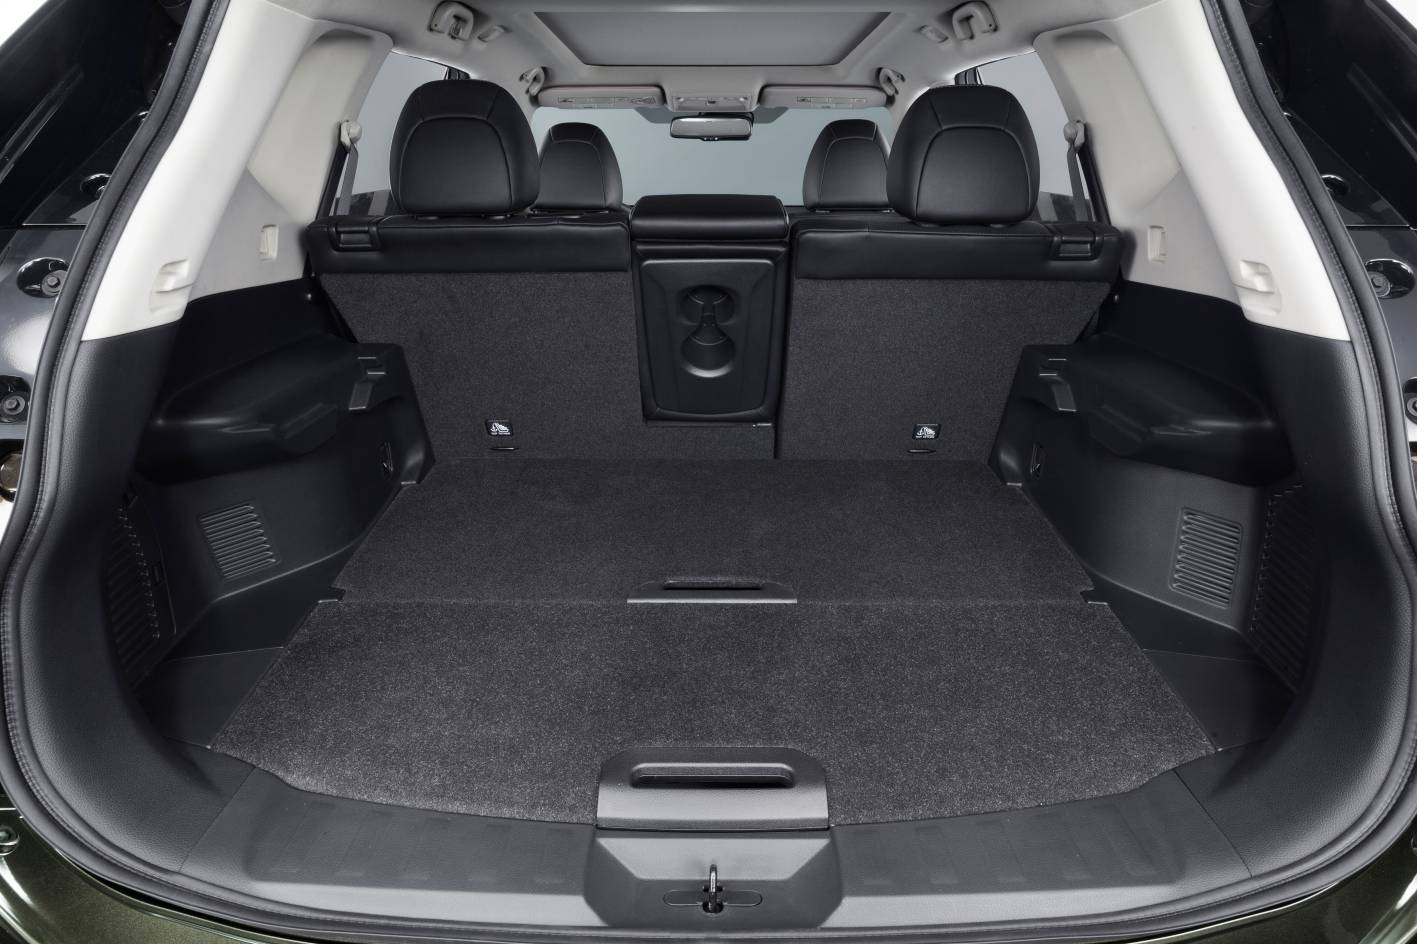 nissan x trail luggage space. Black Bedroom Furniture Sets. Home Design Ideas